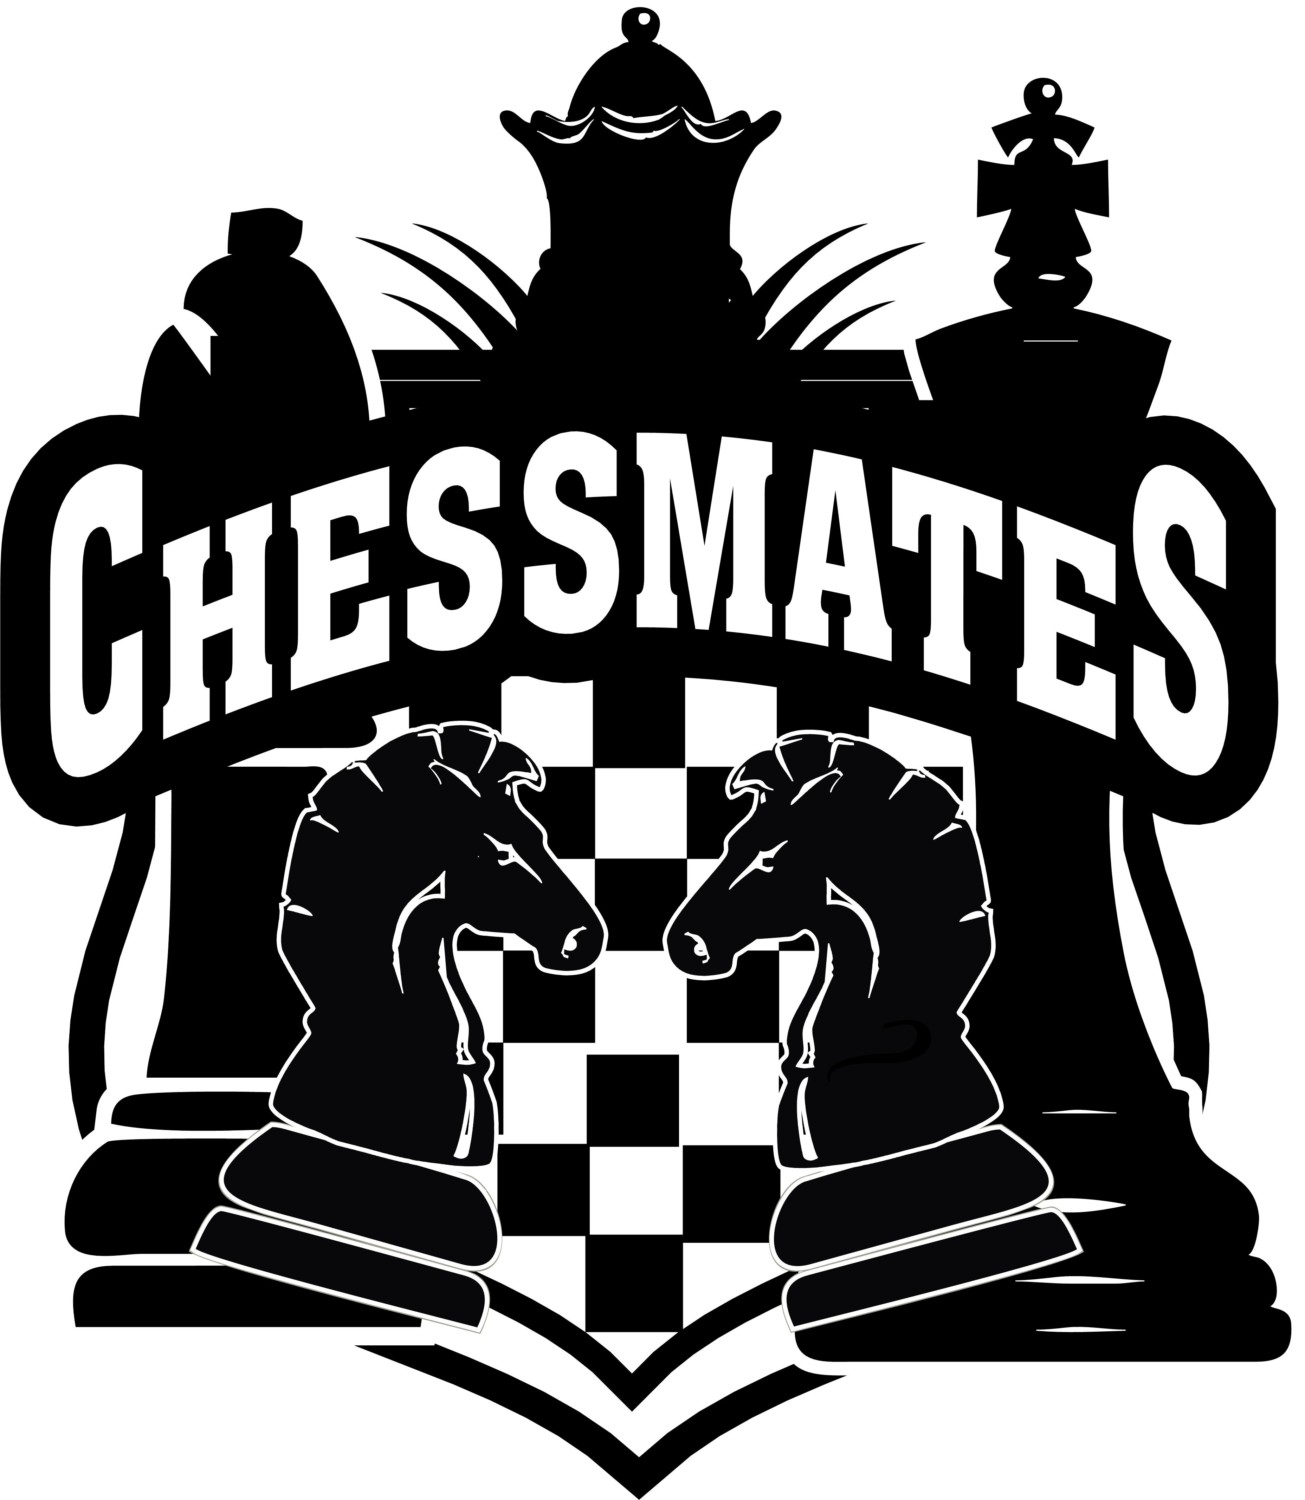 As A Colorado Chess Club Chessmates Provides Camps Tournaments Private Lessons Clubs And Online Instruction In Fort